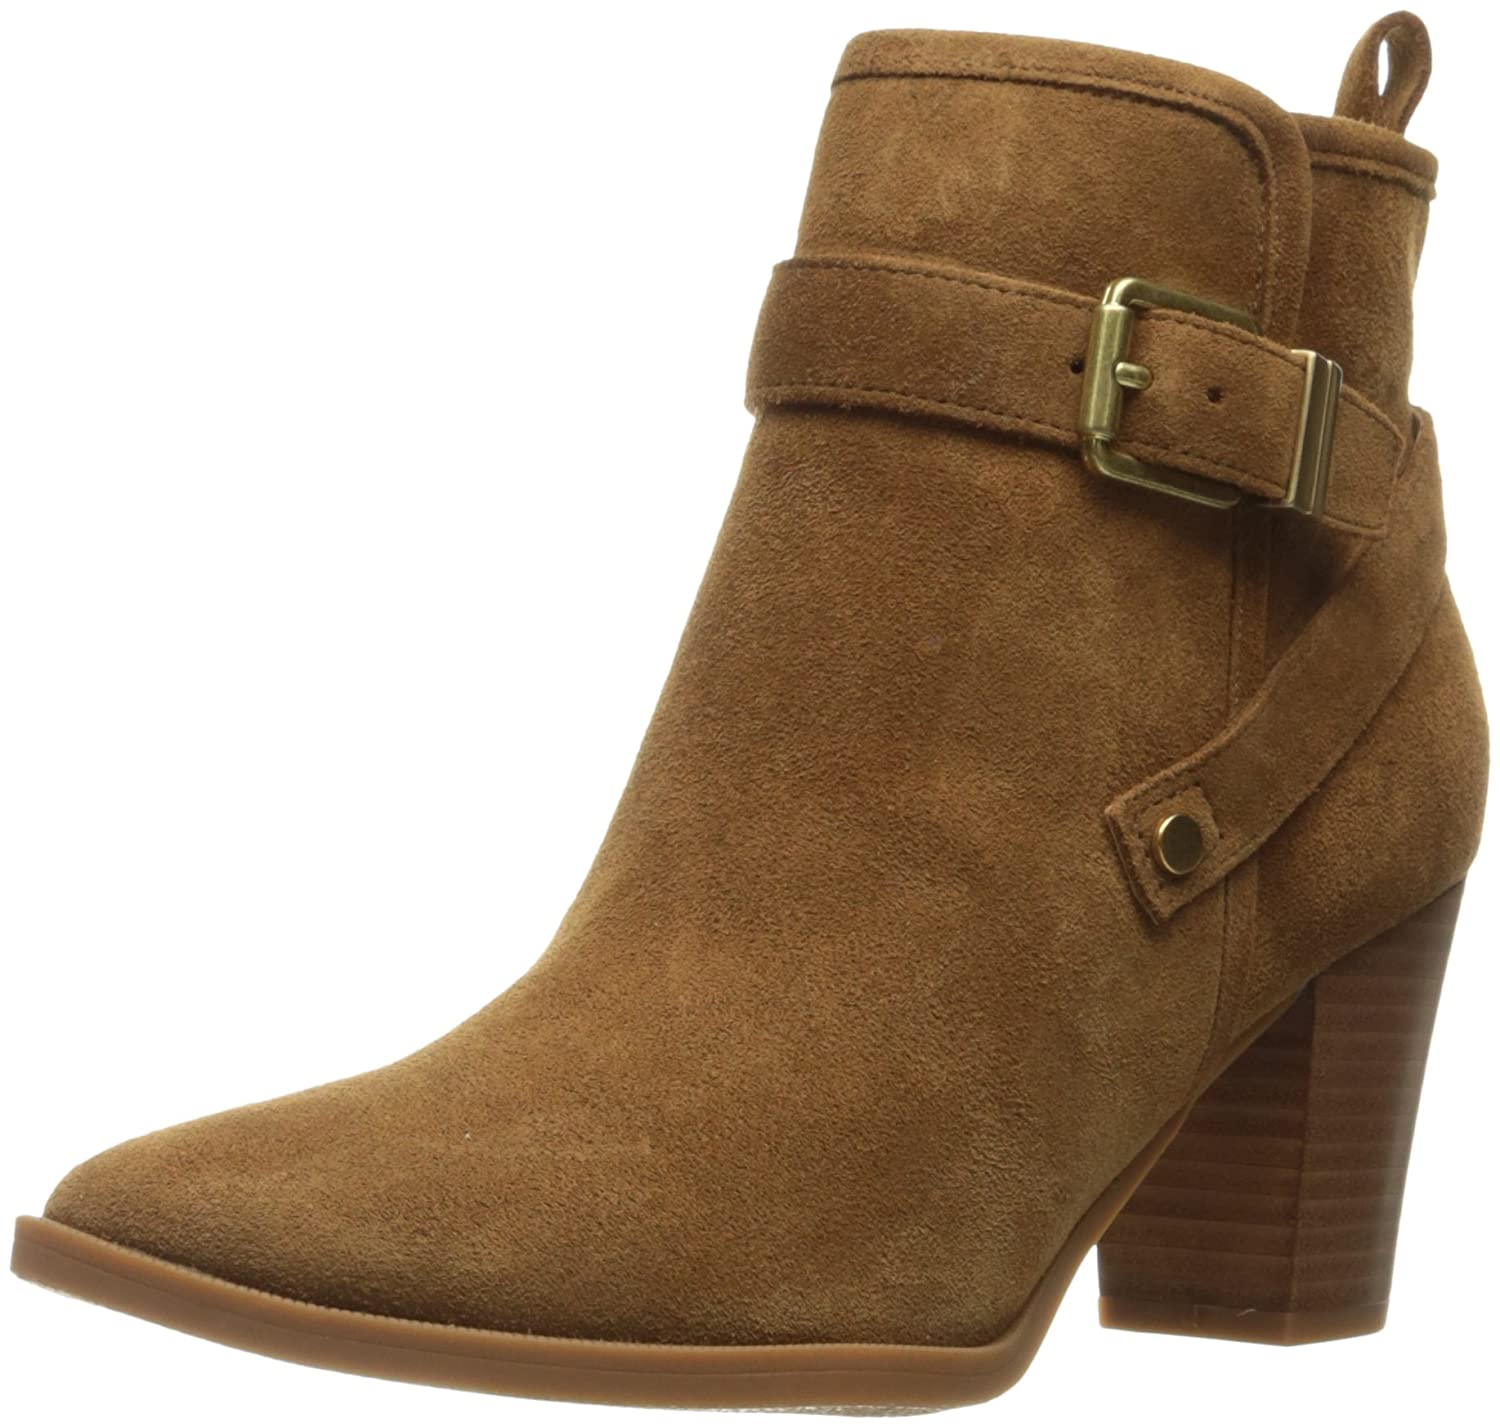 Franco Sarto Women's Delancey Ankle Bootie B01IHT44SY 10 B(M) US|Cognac